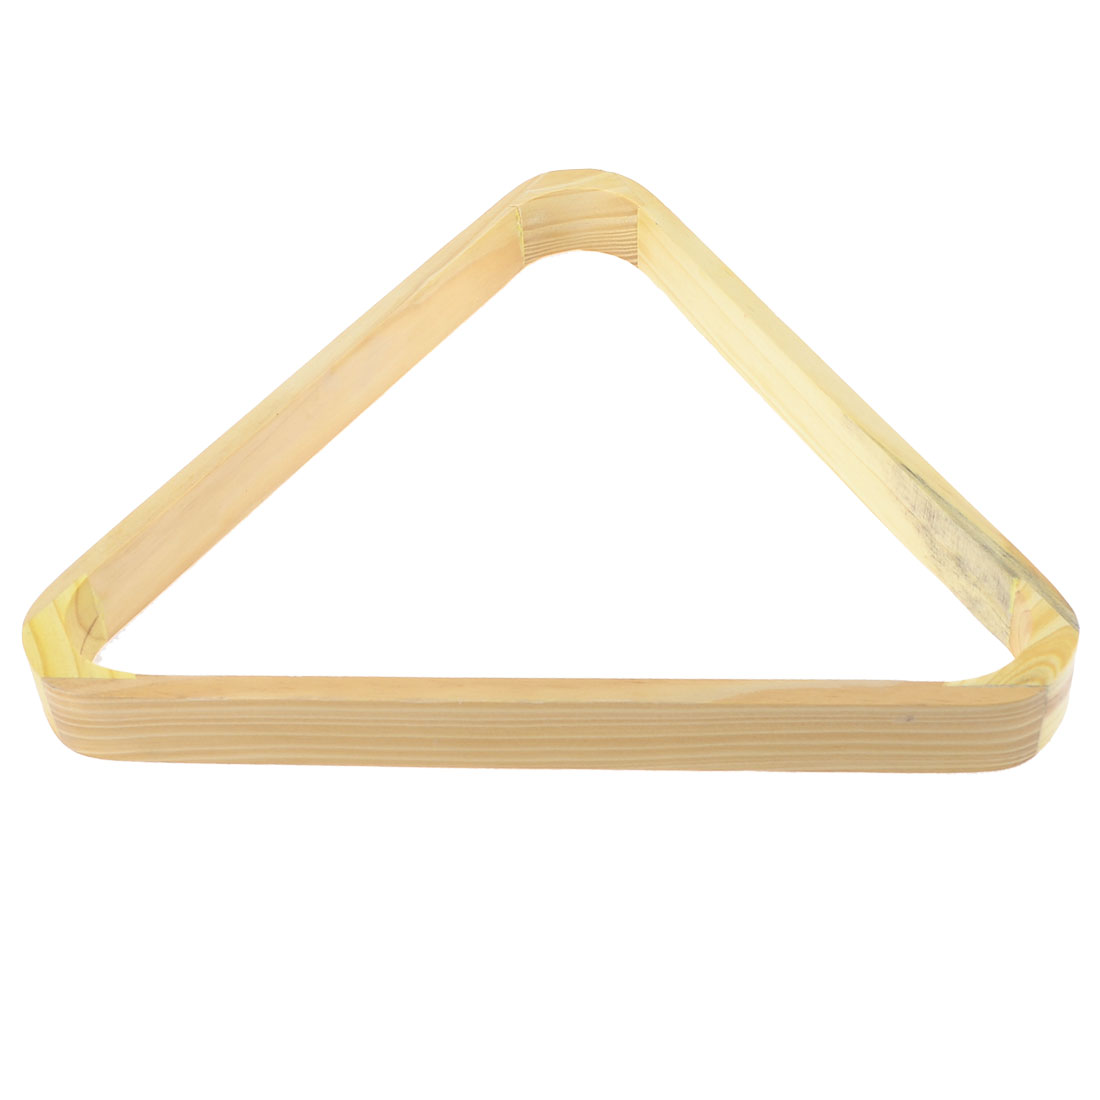 Games Billiards Pool Table Eight Ball Wooden Triangle Rack Beige 30x30cm